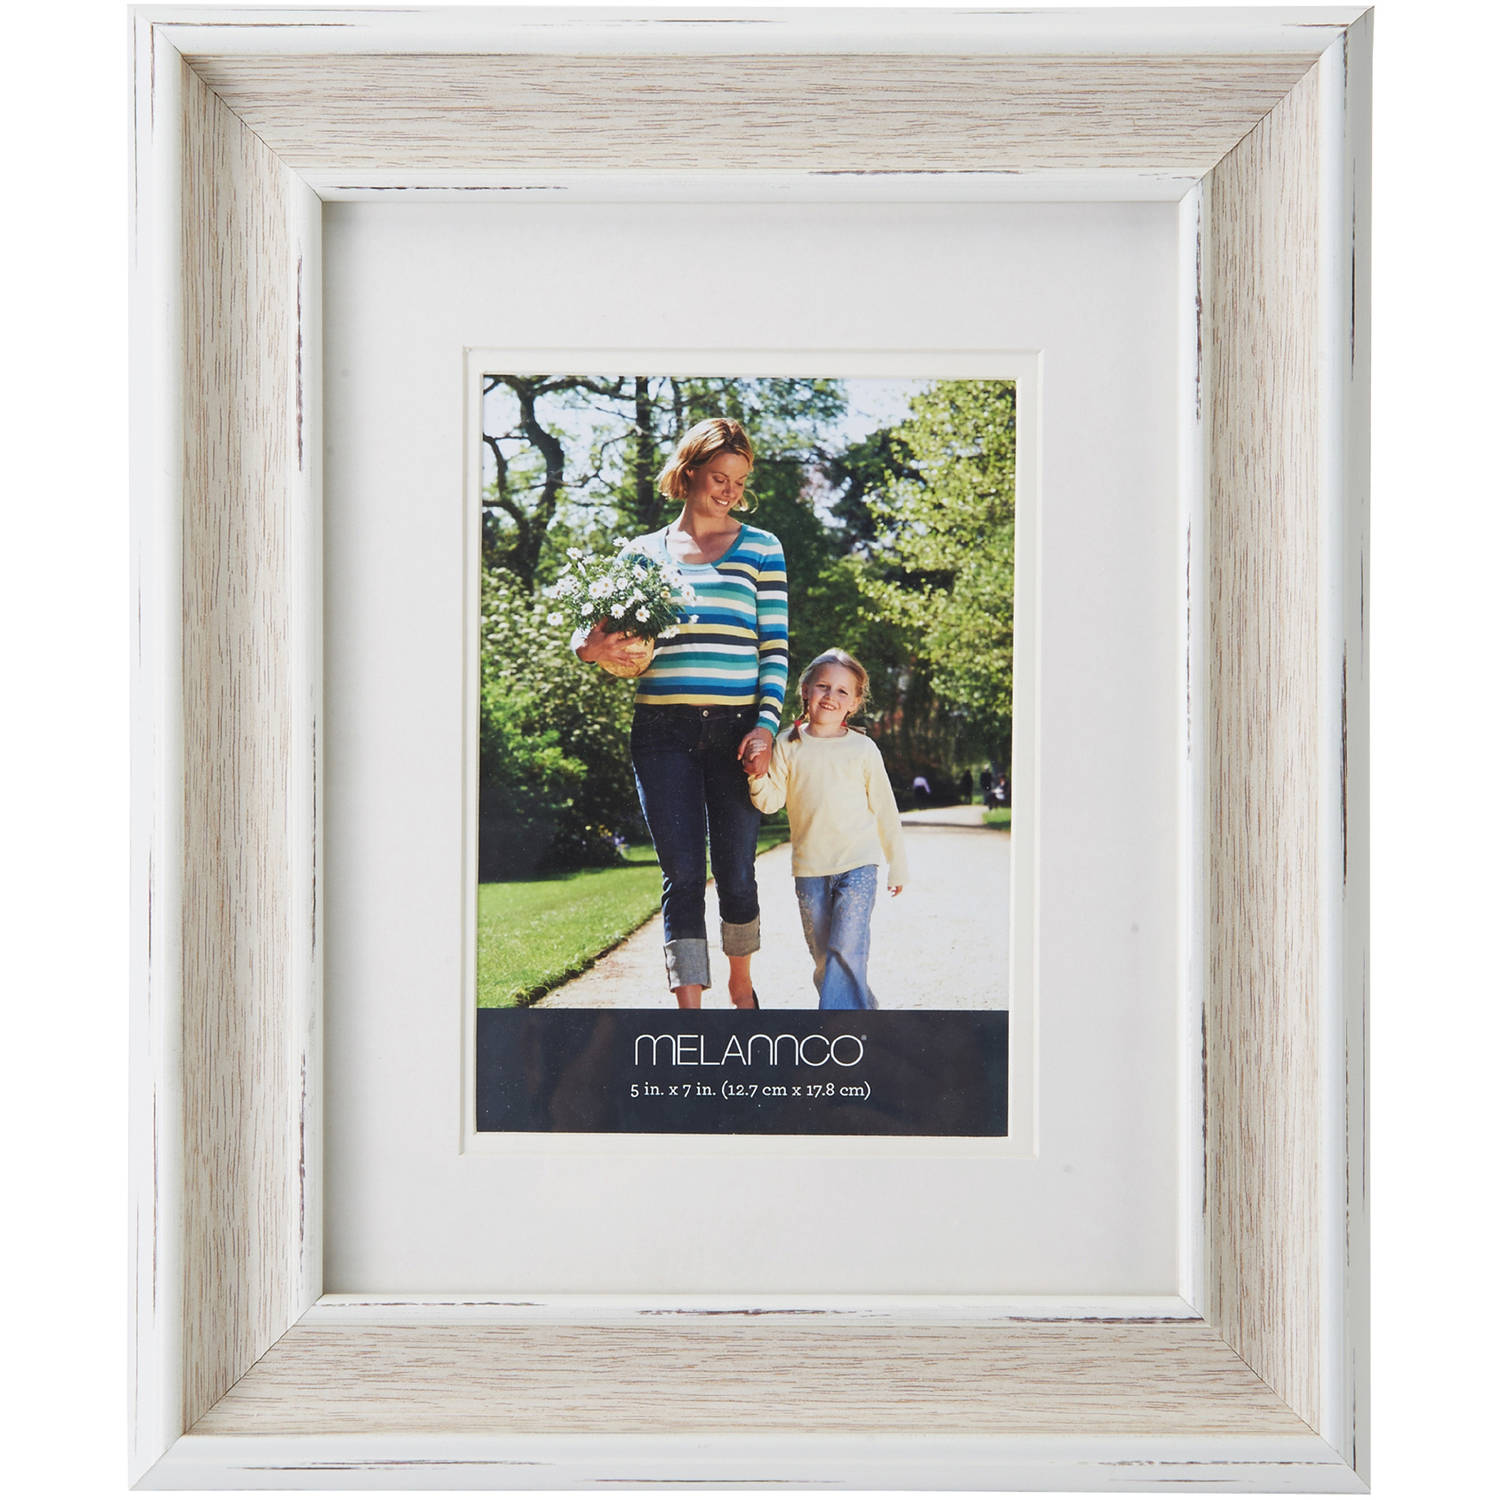 Melannco Double Matted Picture Frame